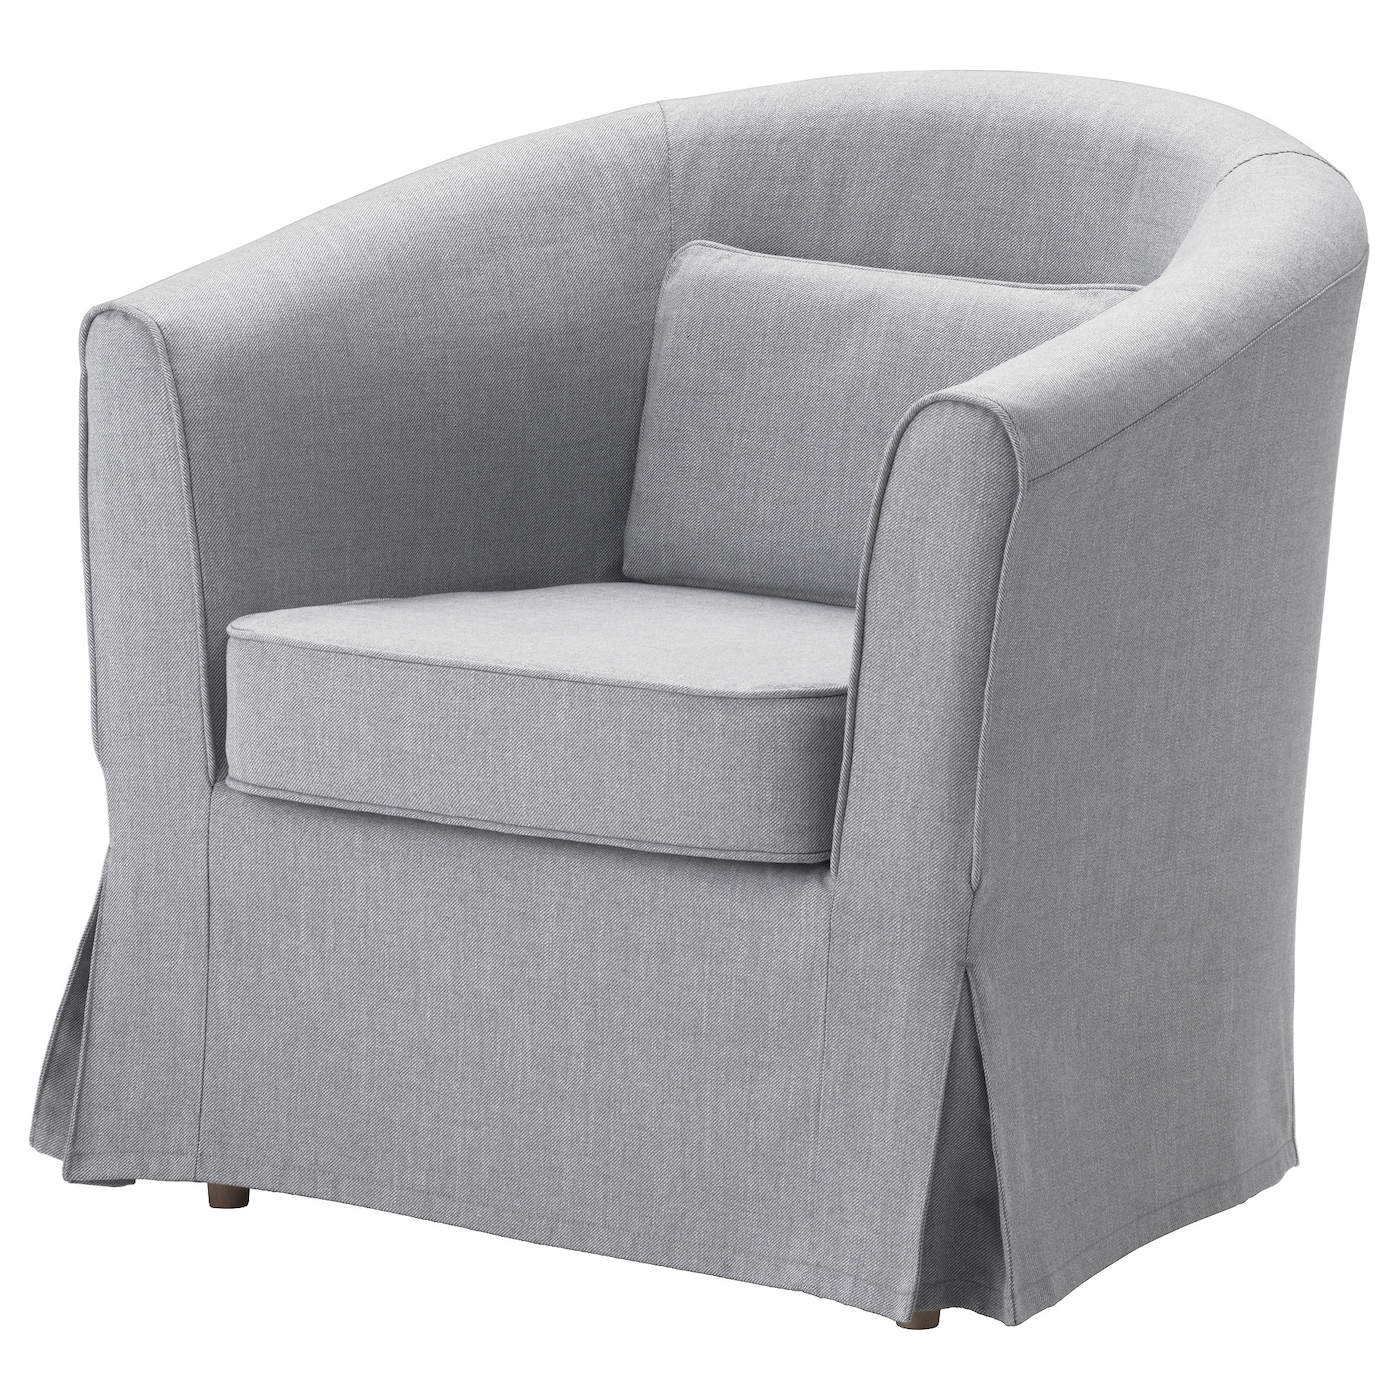 Armless club chairs - Ikea Tullsta Armchair Slim Lines Easy To Place